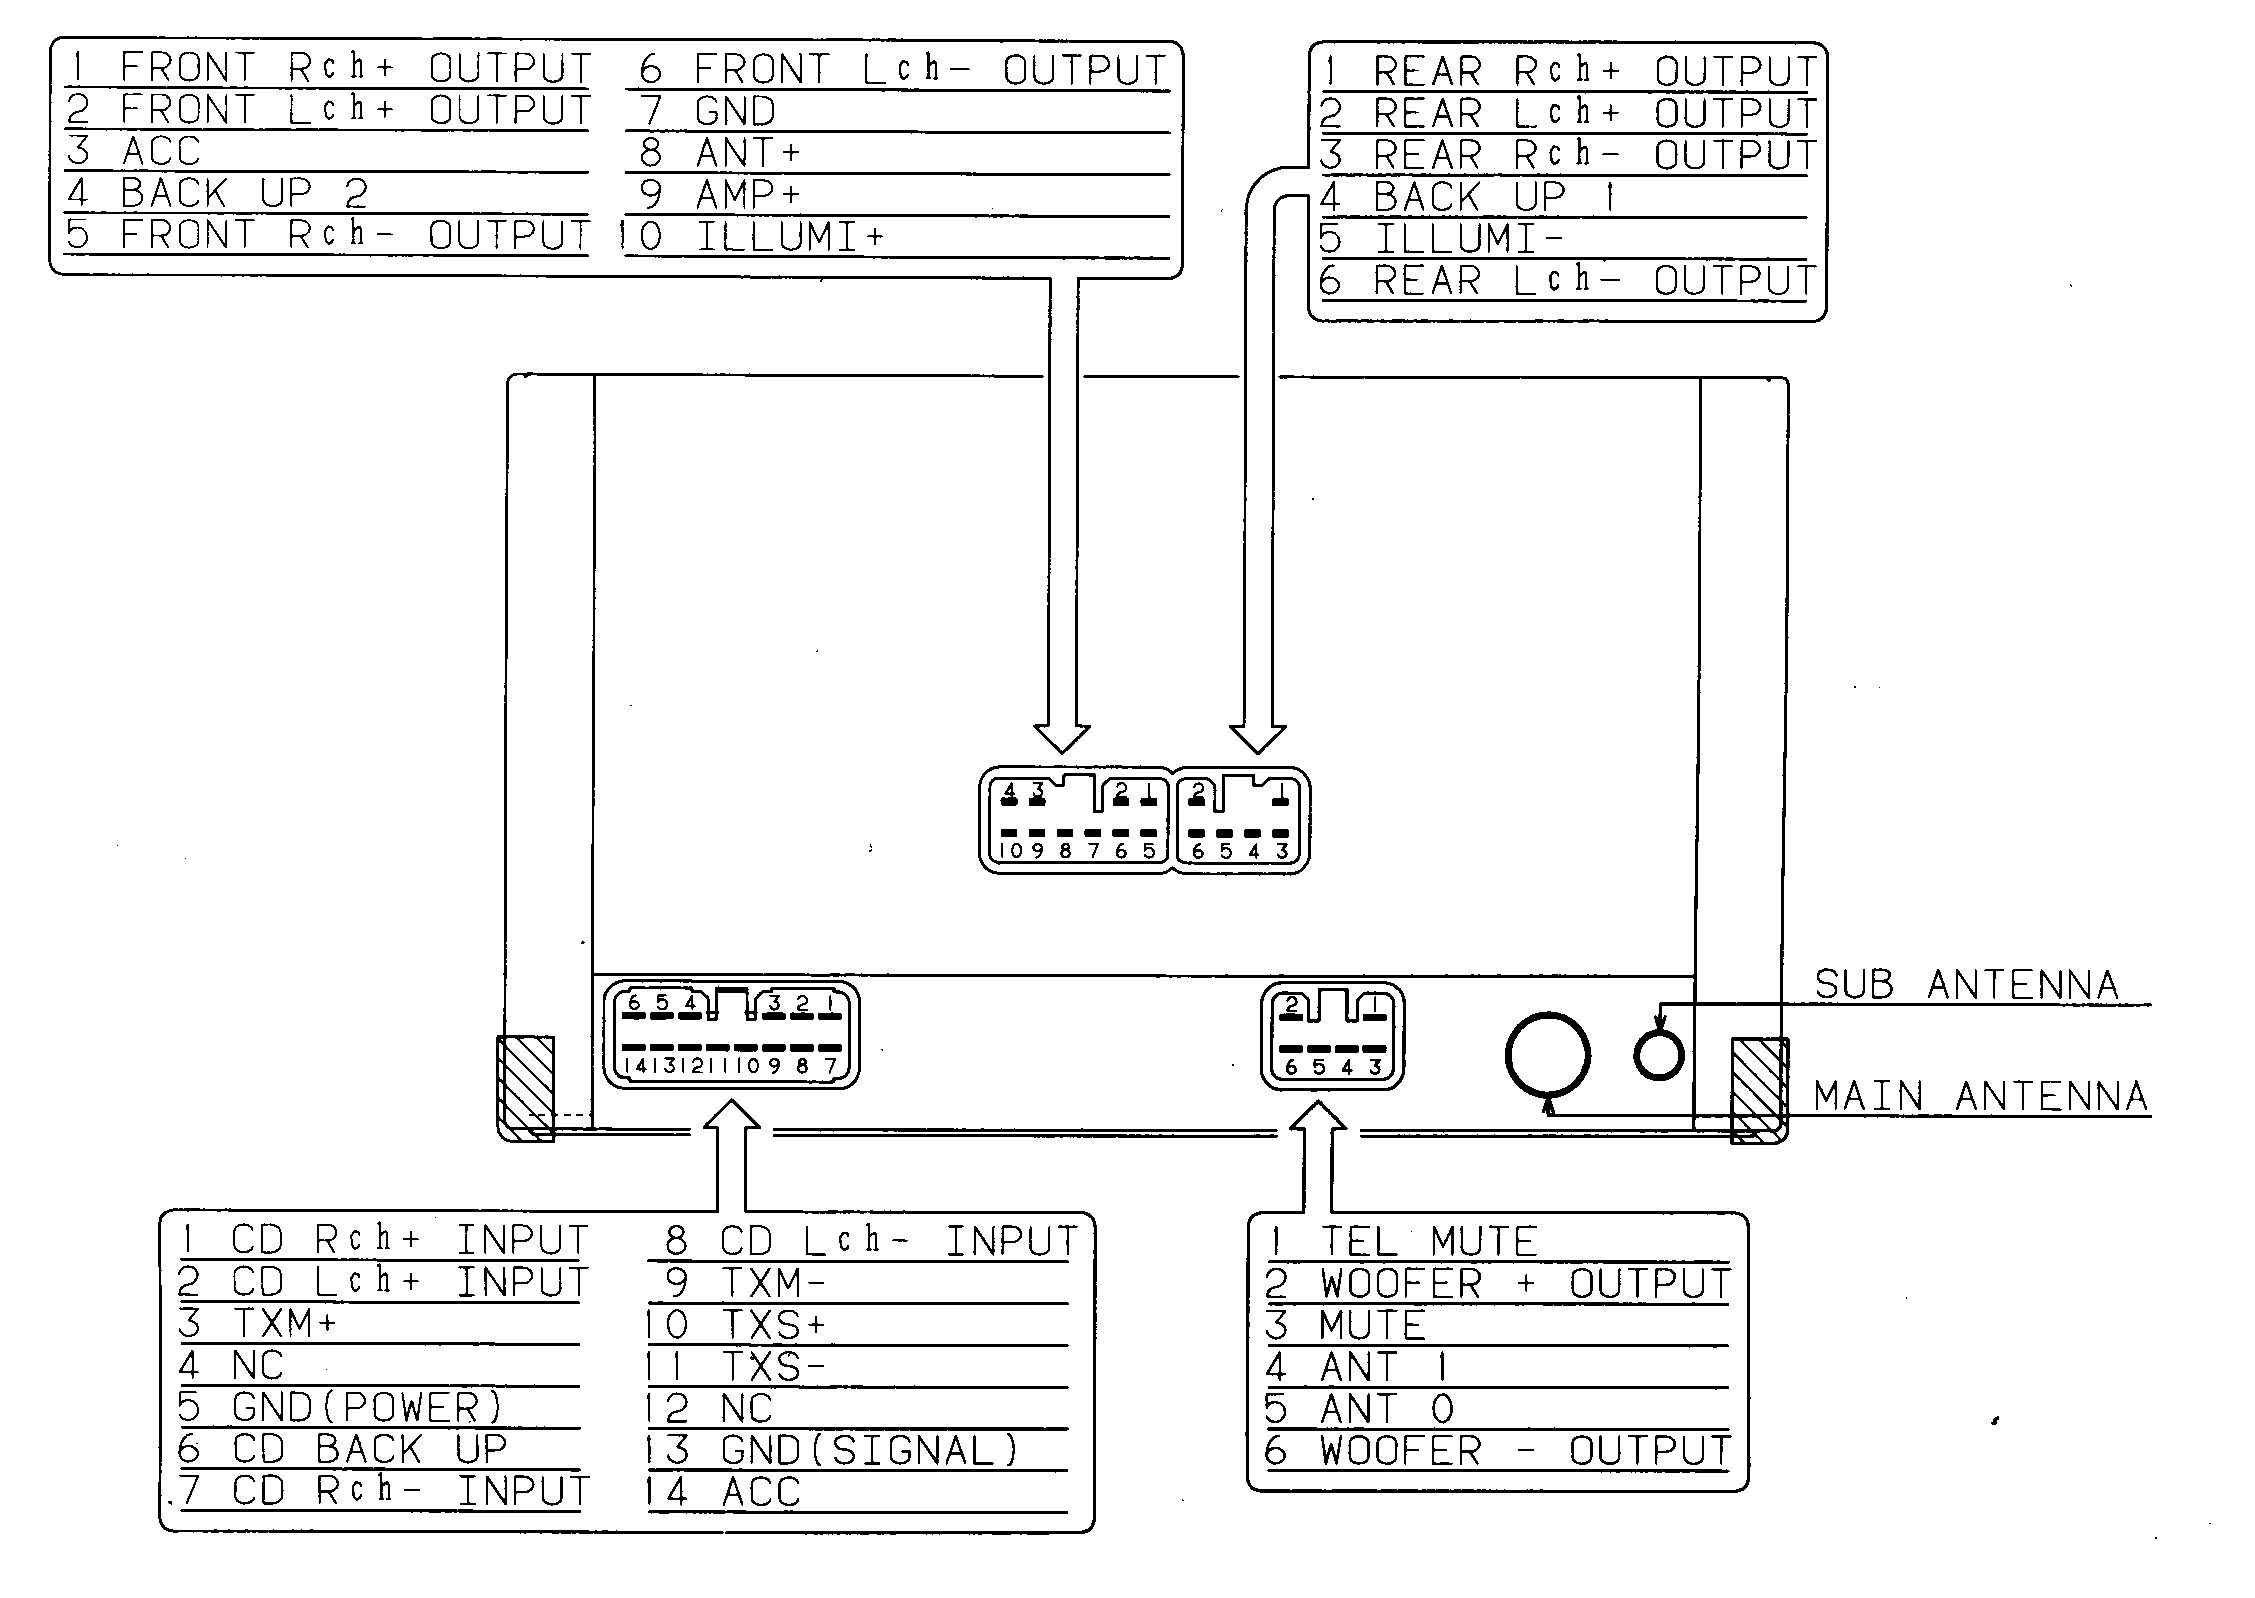 Lexus car stereo wiring diagram harness pinout connector wire hino fm1j wiring diagram efcaviation com hino wiring diagram at reclaimingppi.co